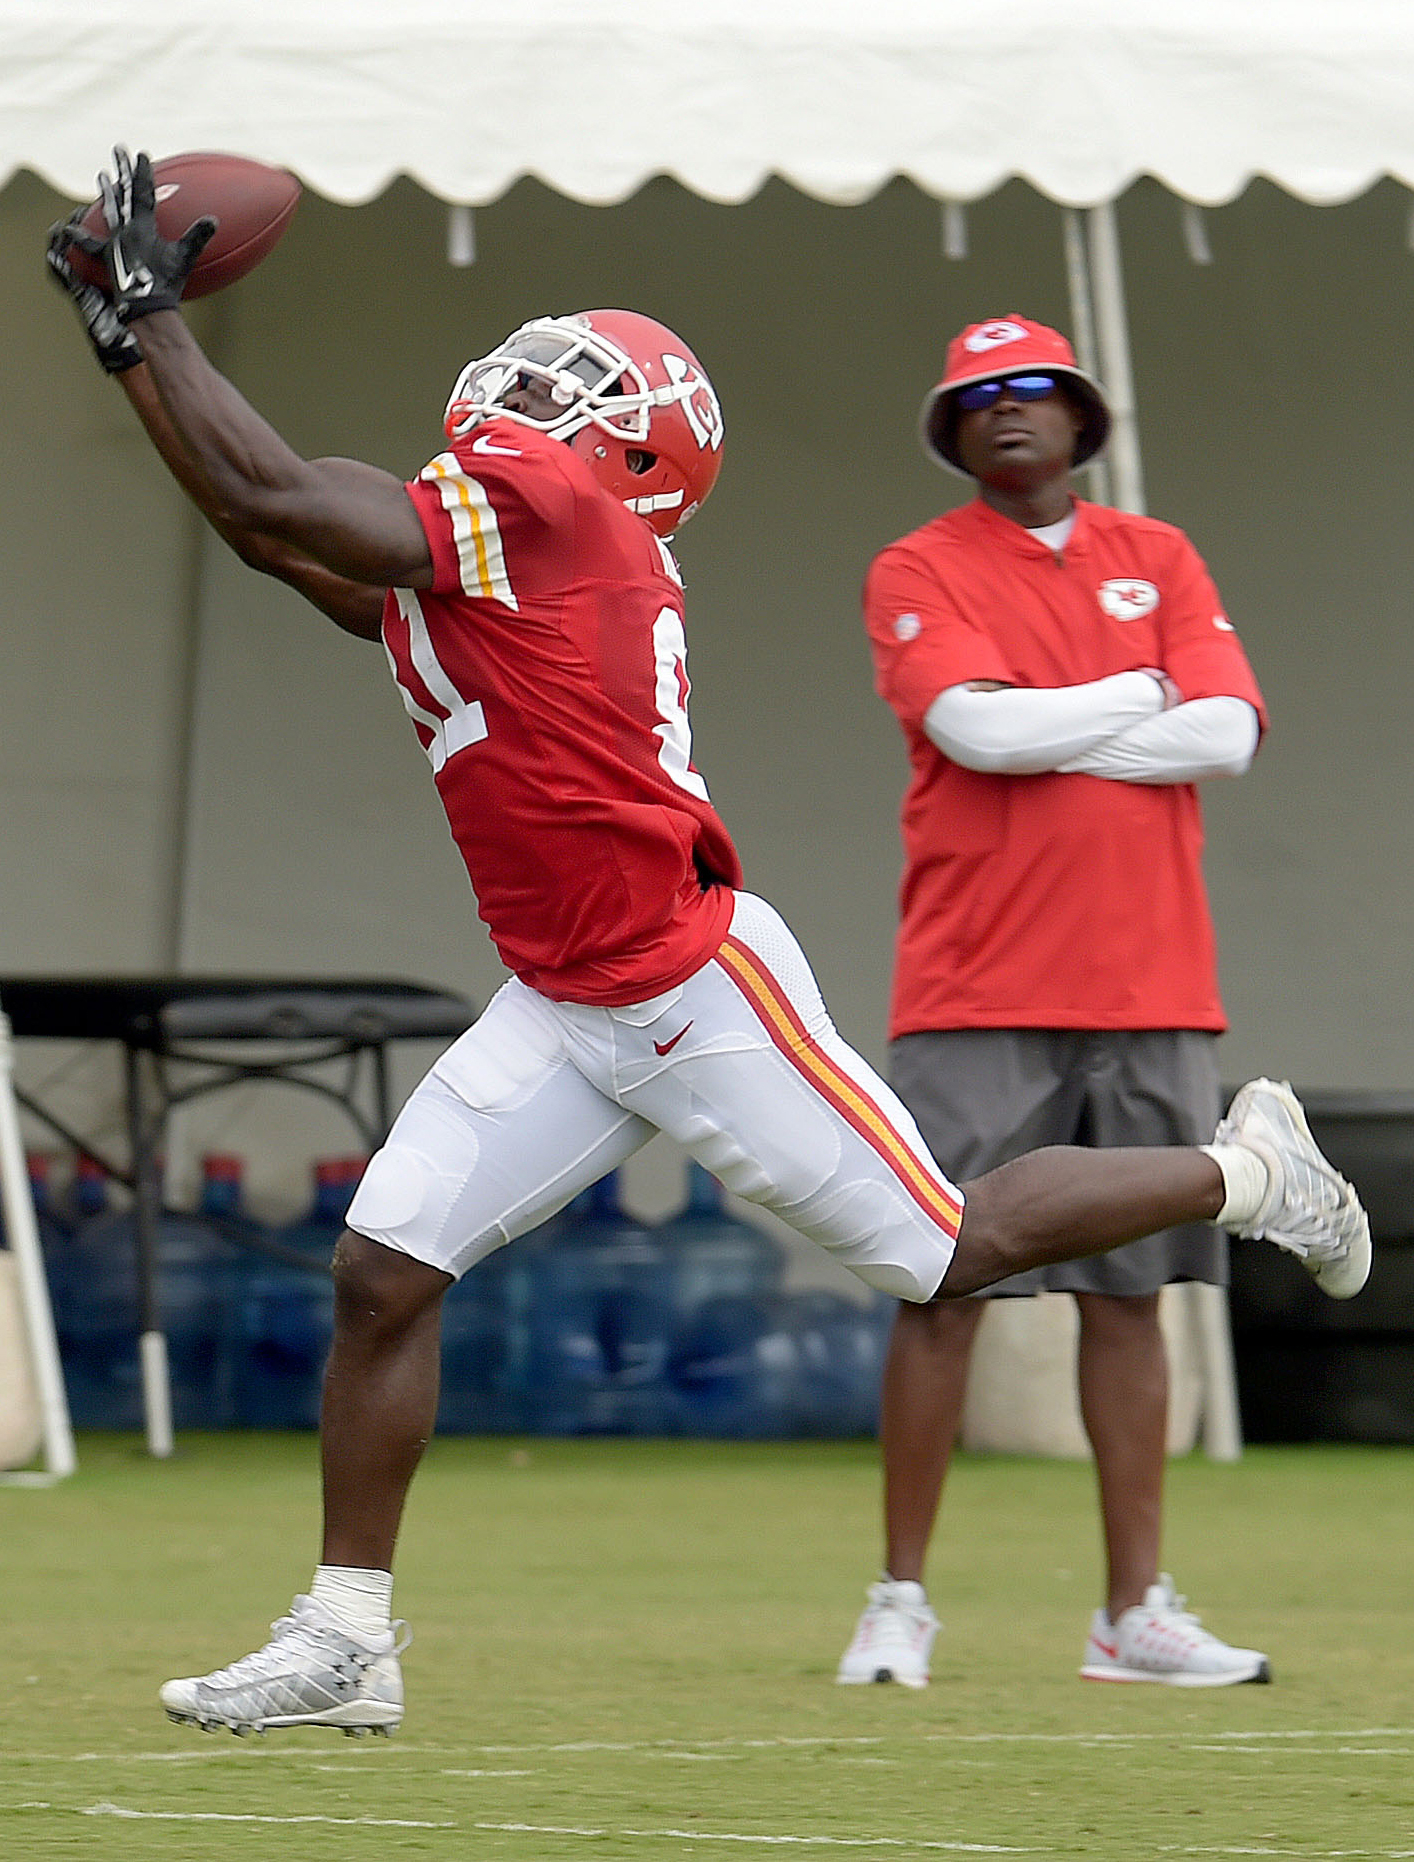 Kansas City Chiefs wide receiver Tyreek Hill makes a catch during practice at the NFL football team's training camp Tuesday, Aug. 2, 2016, in St. Joseph, Mo. (Jessica A. Stewart/The St. Joseph News-Press via AP)